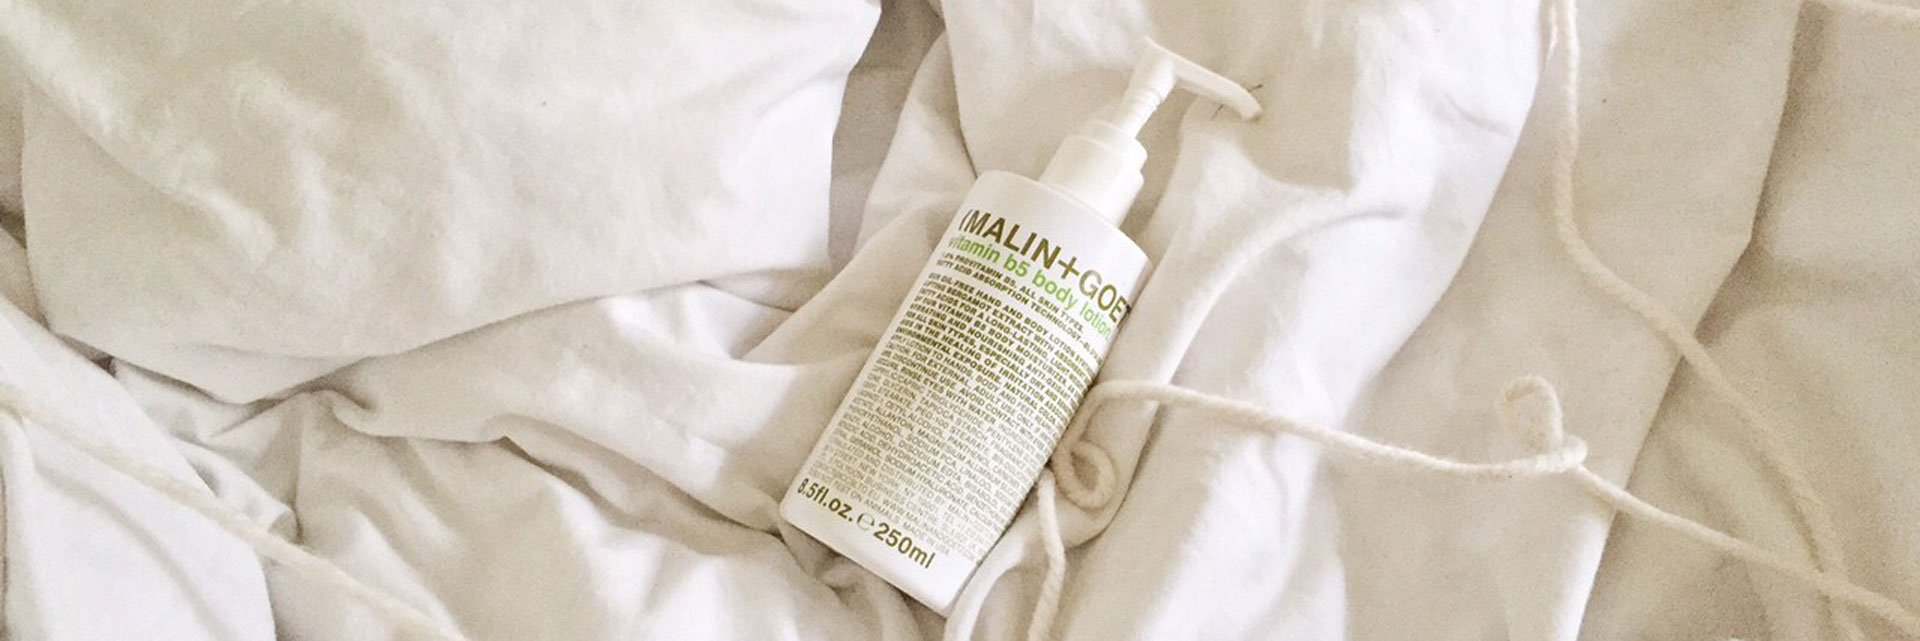 malin + goetz vitamin b5 body lotion